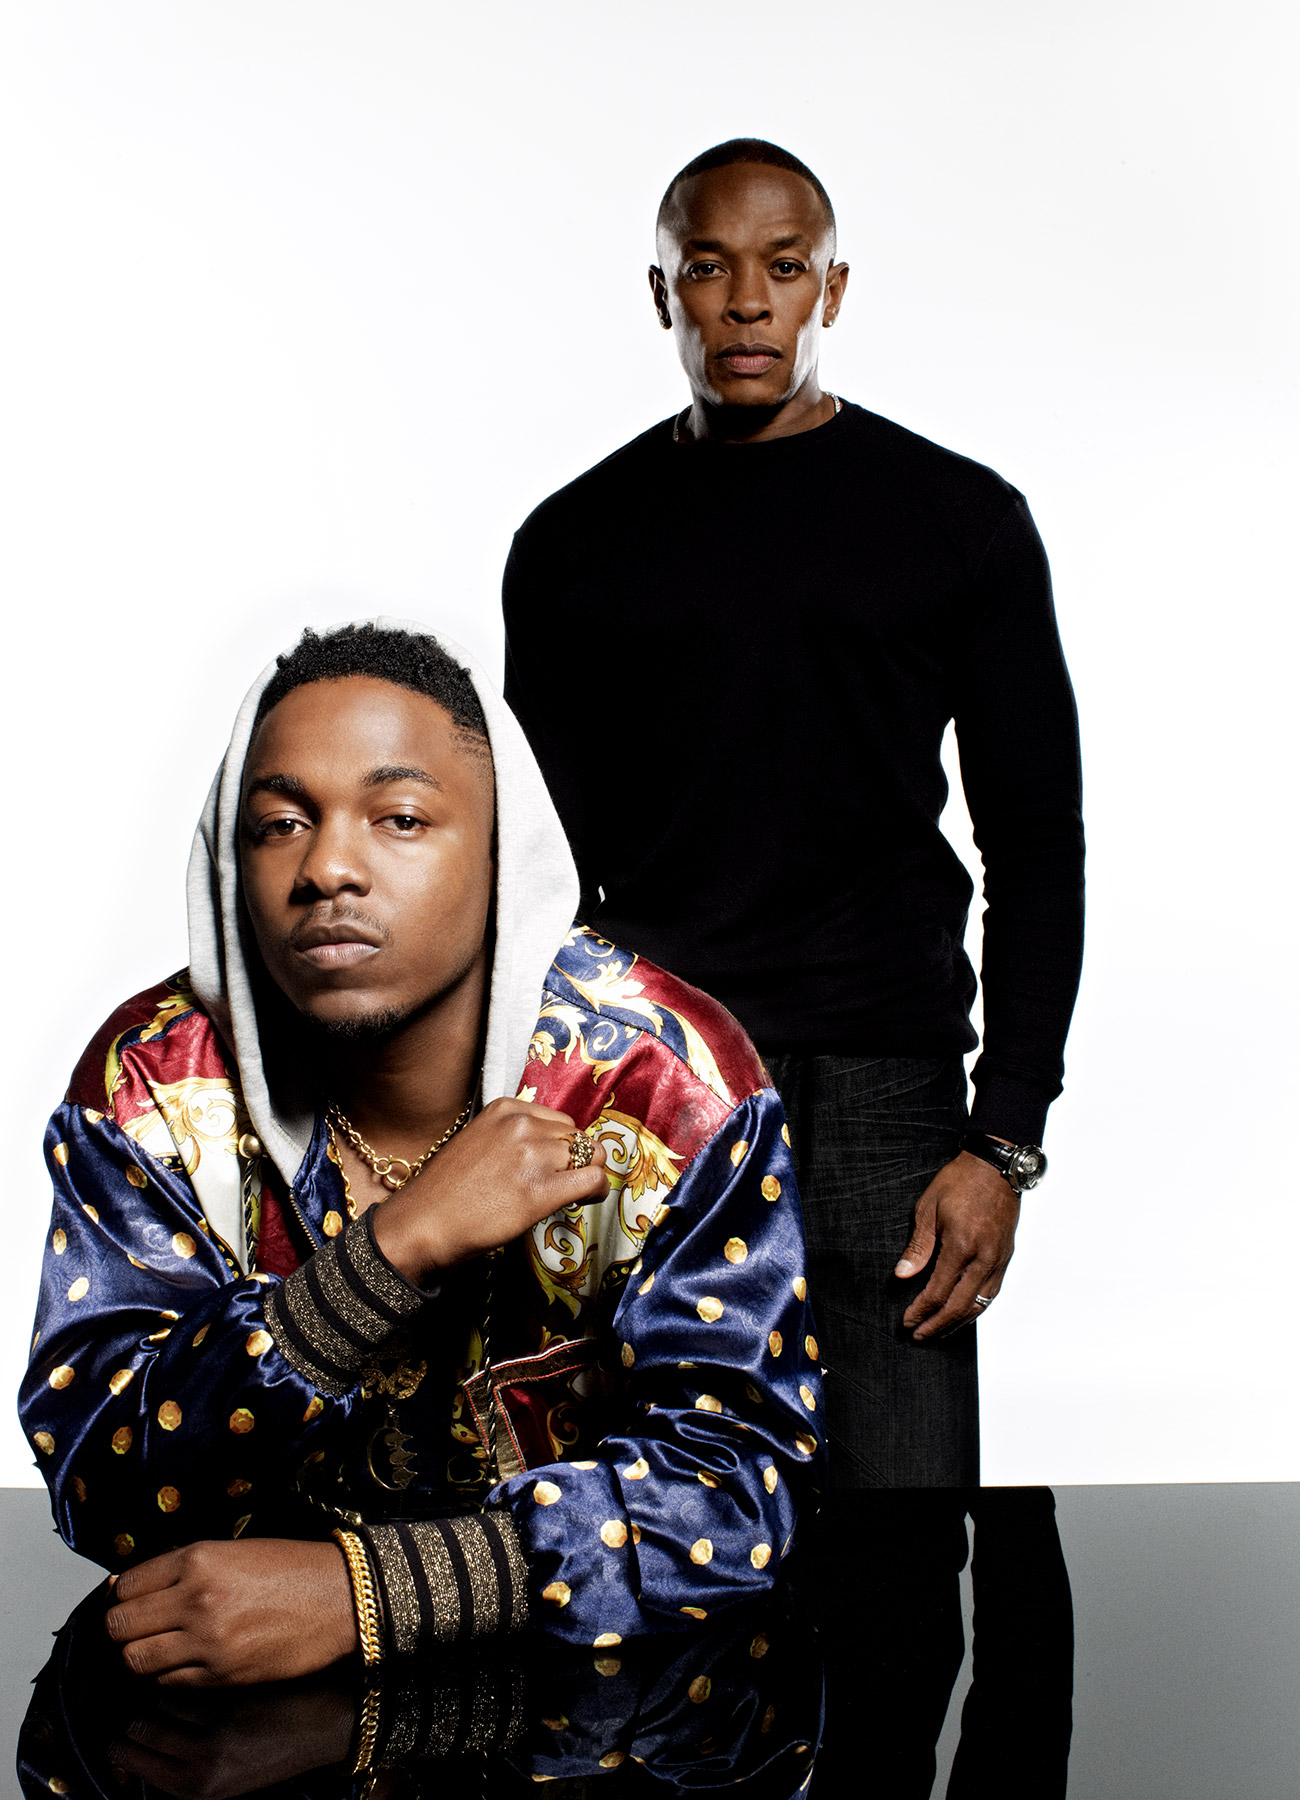 portrait of Hip-hop artist, rapper, Kendrick Lamar photographed by Scott Council